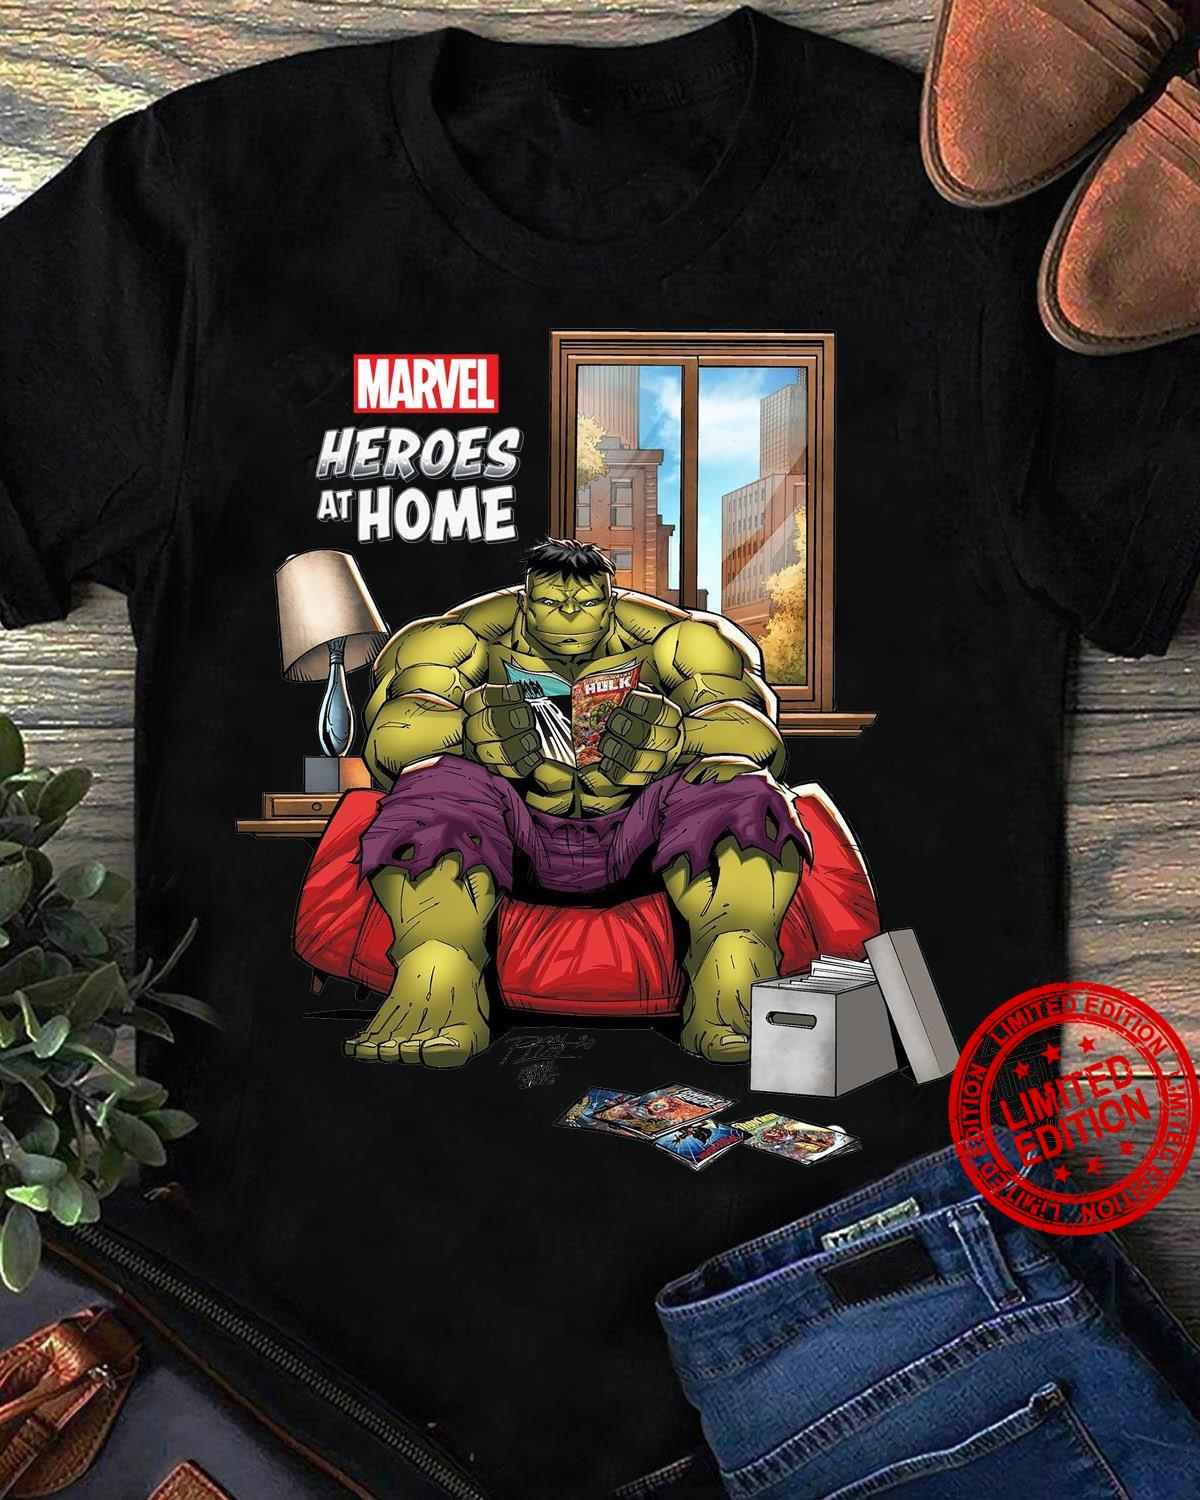 Marvel Heroes At Home Shirt